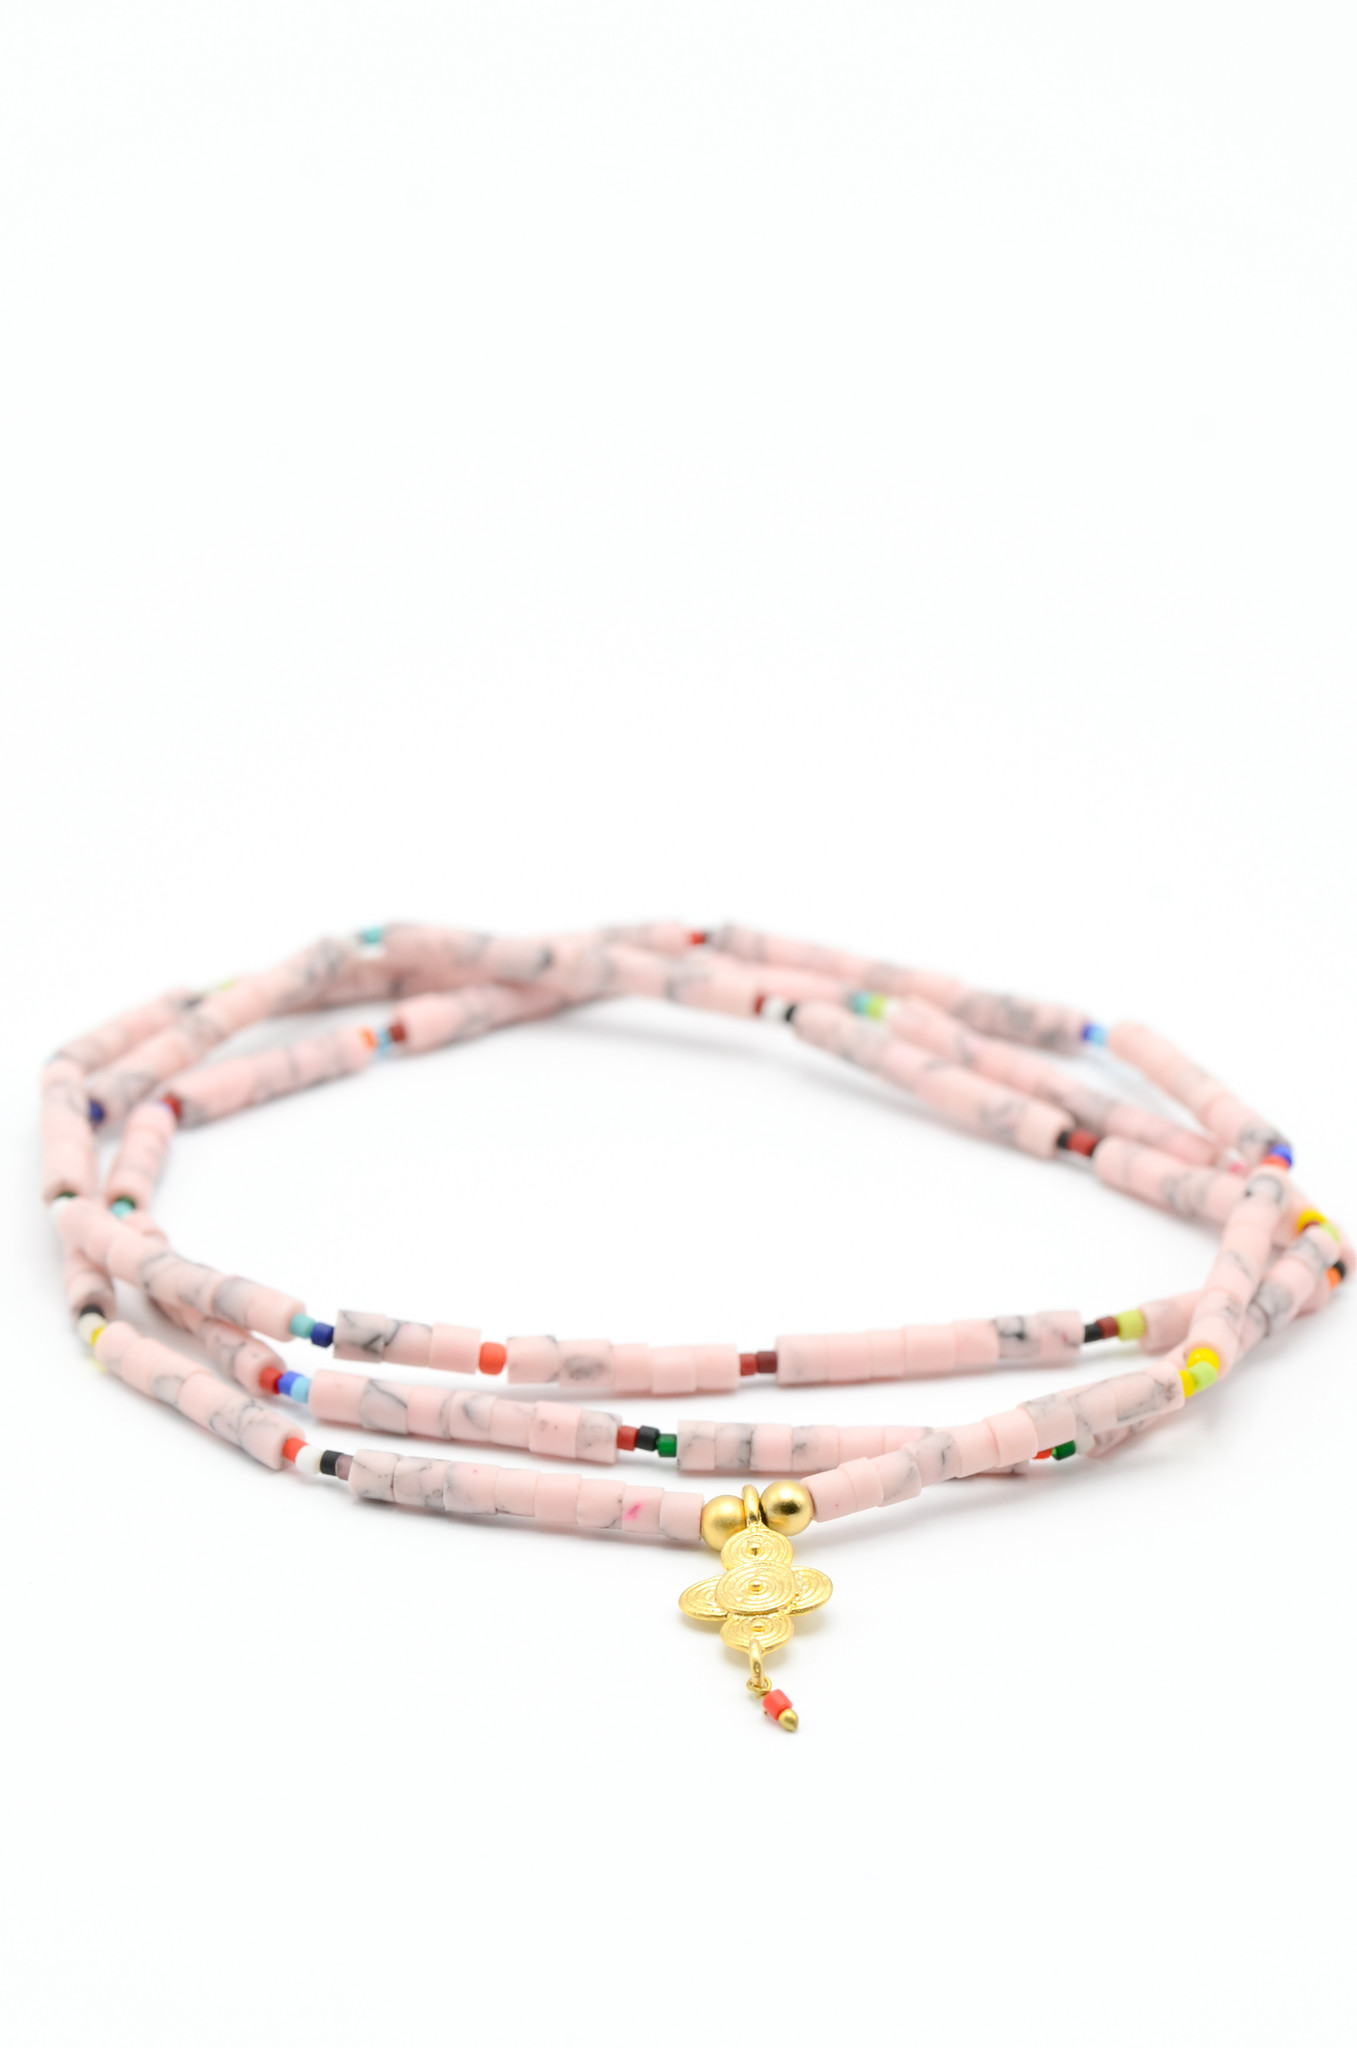 SURFBEAD NECKLACE PINK-1